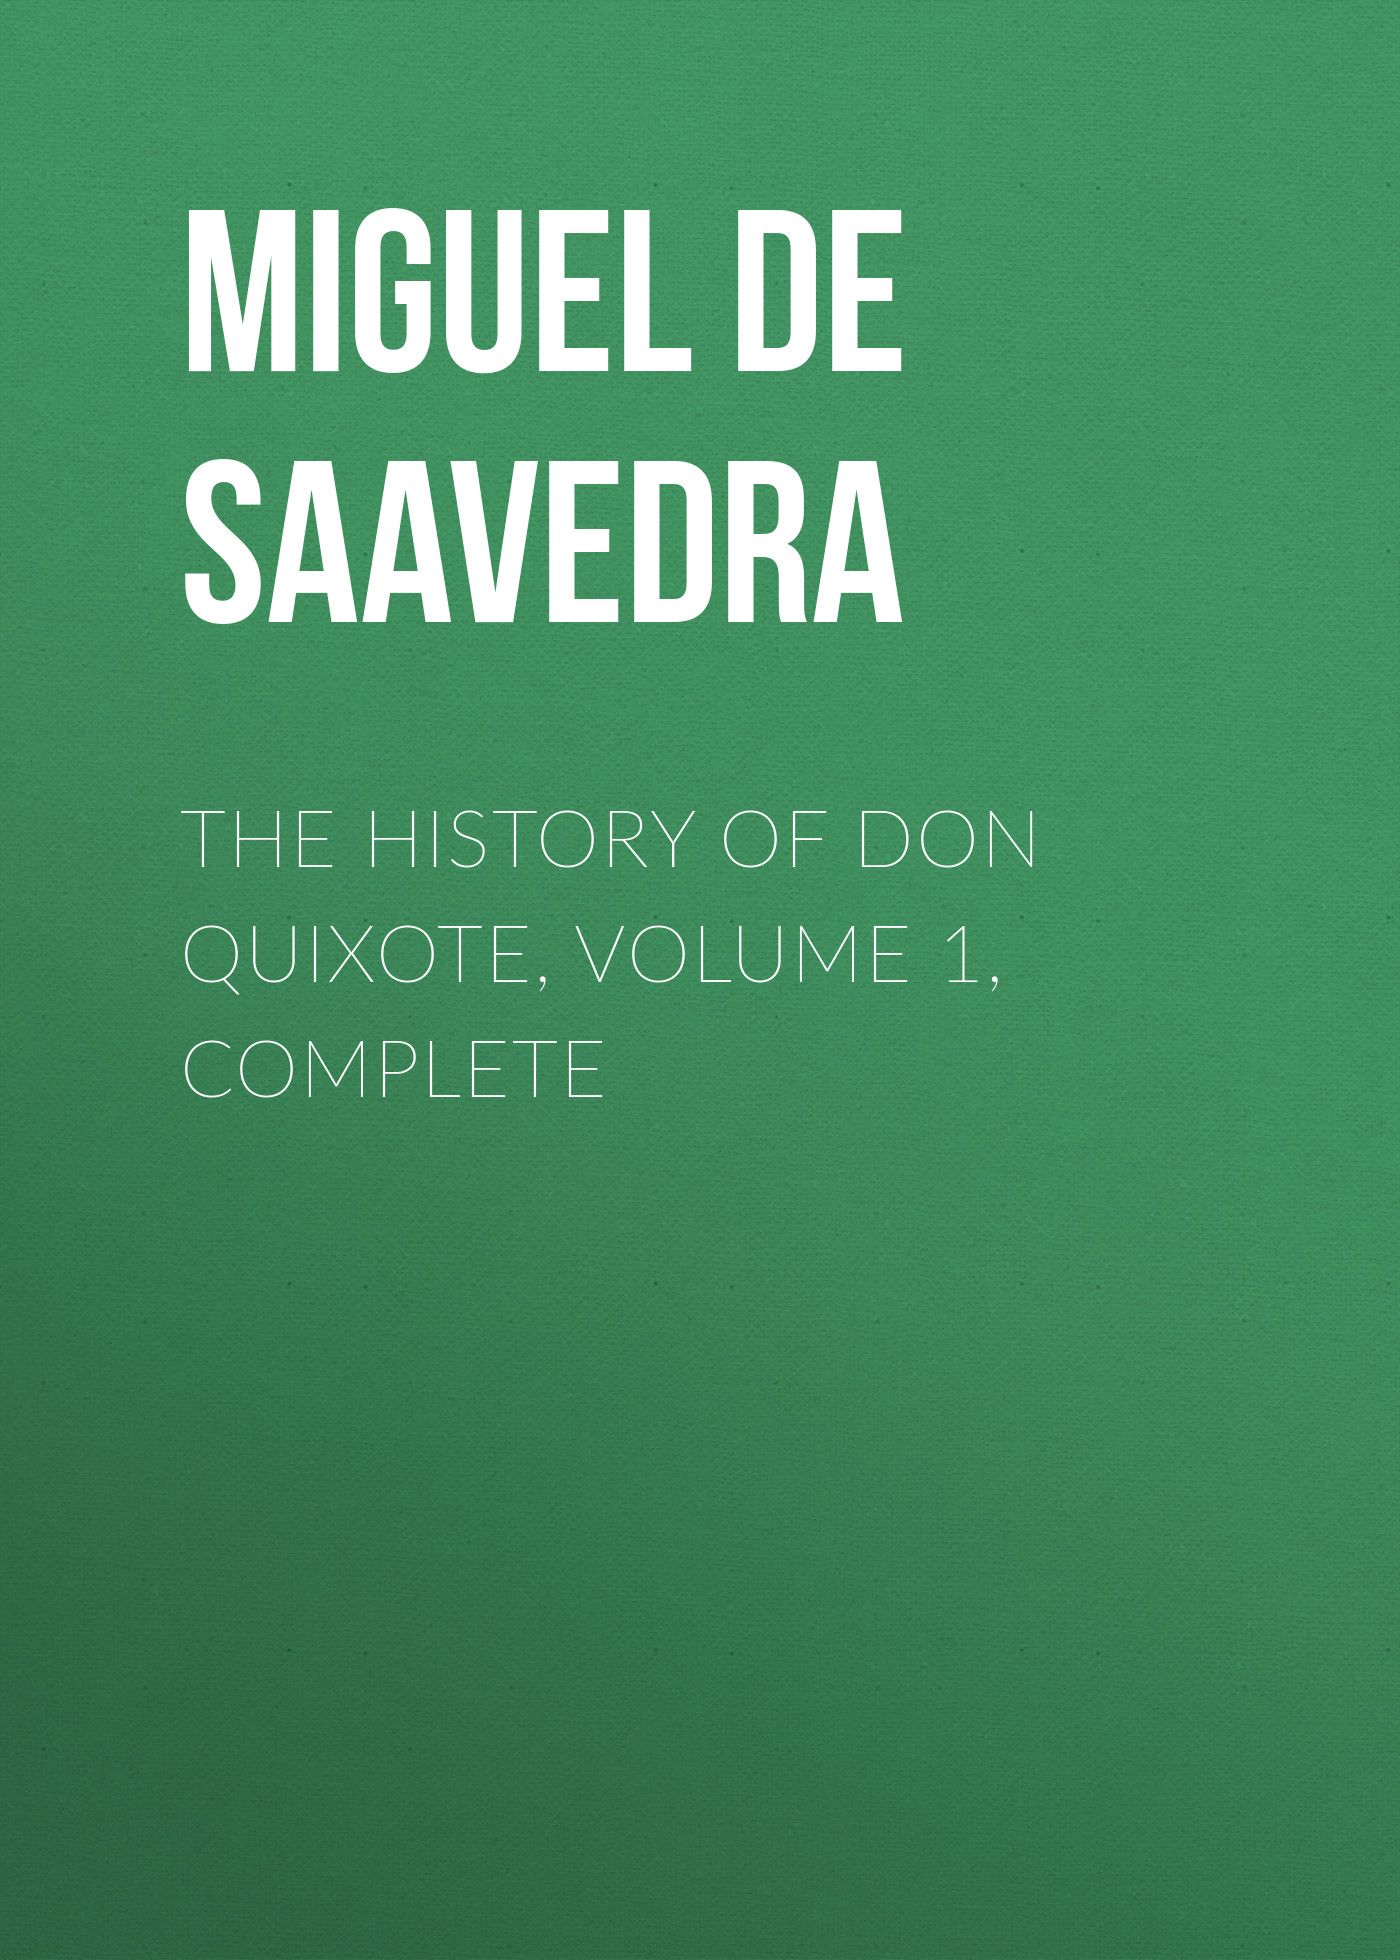 цена Мигель де Сервантес Сааведра The History of Don Quixote, Volume 1, Complete